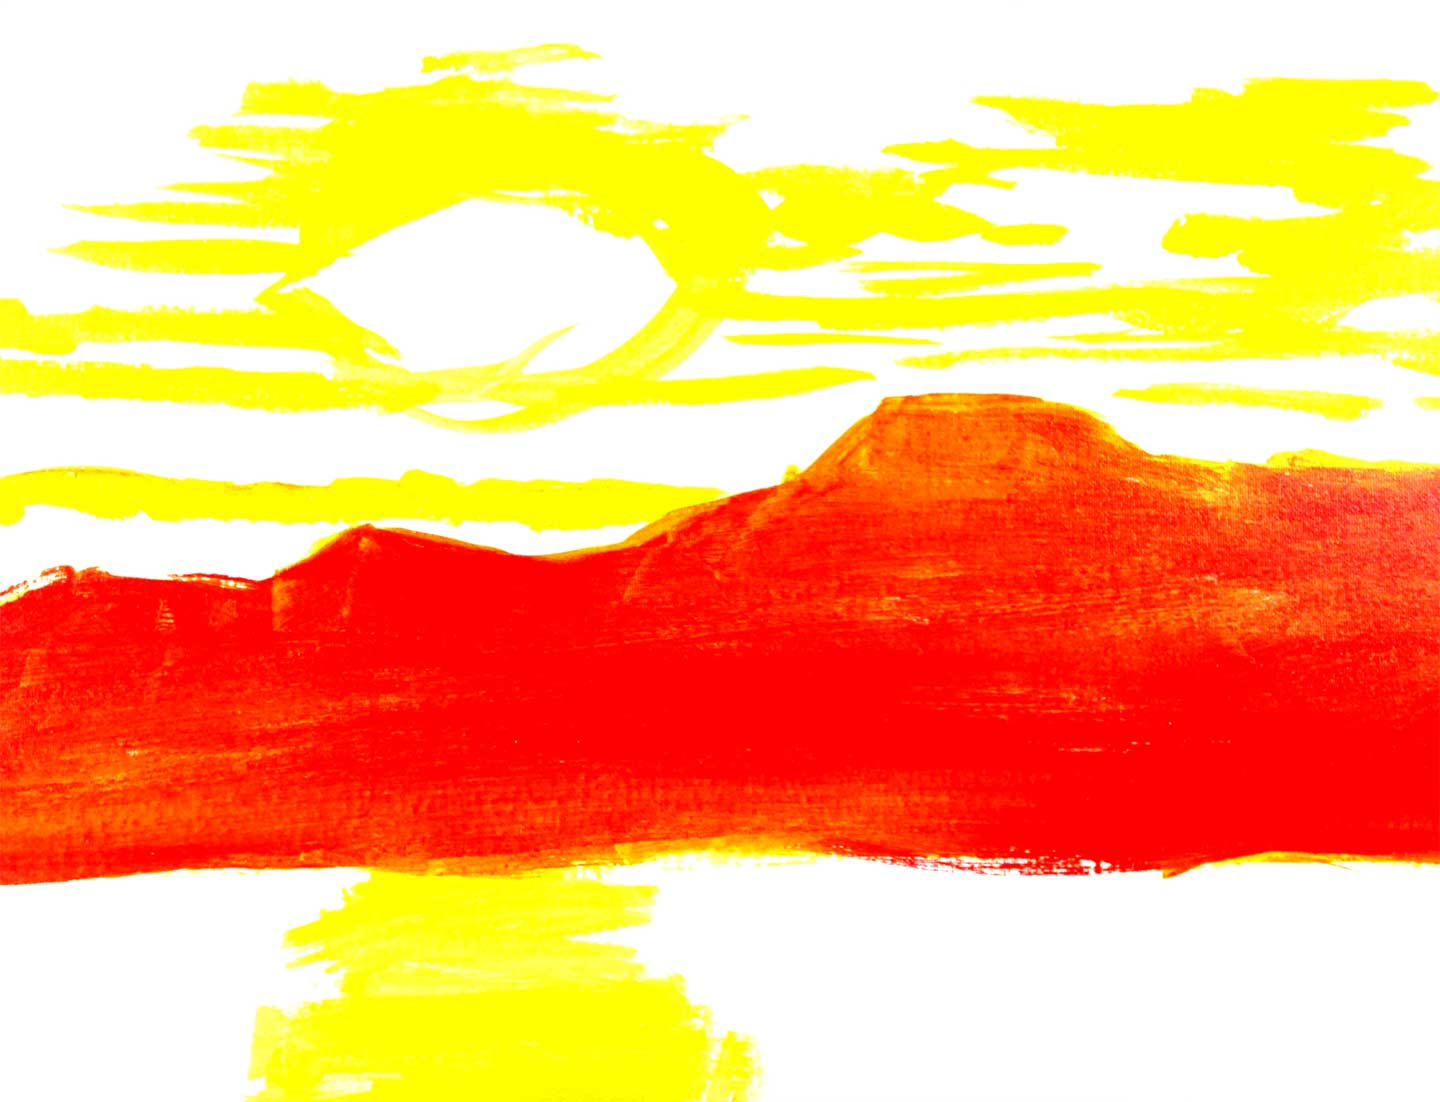 sunset-painting-demo-1.jpg